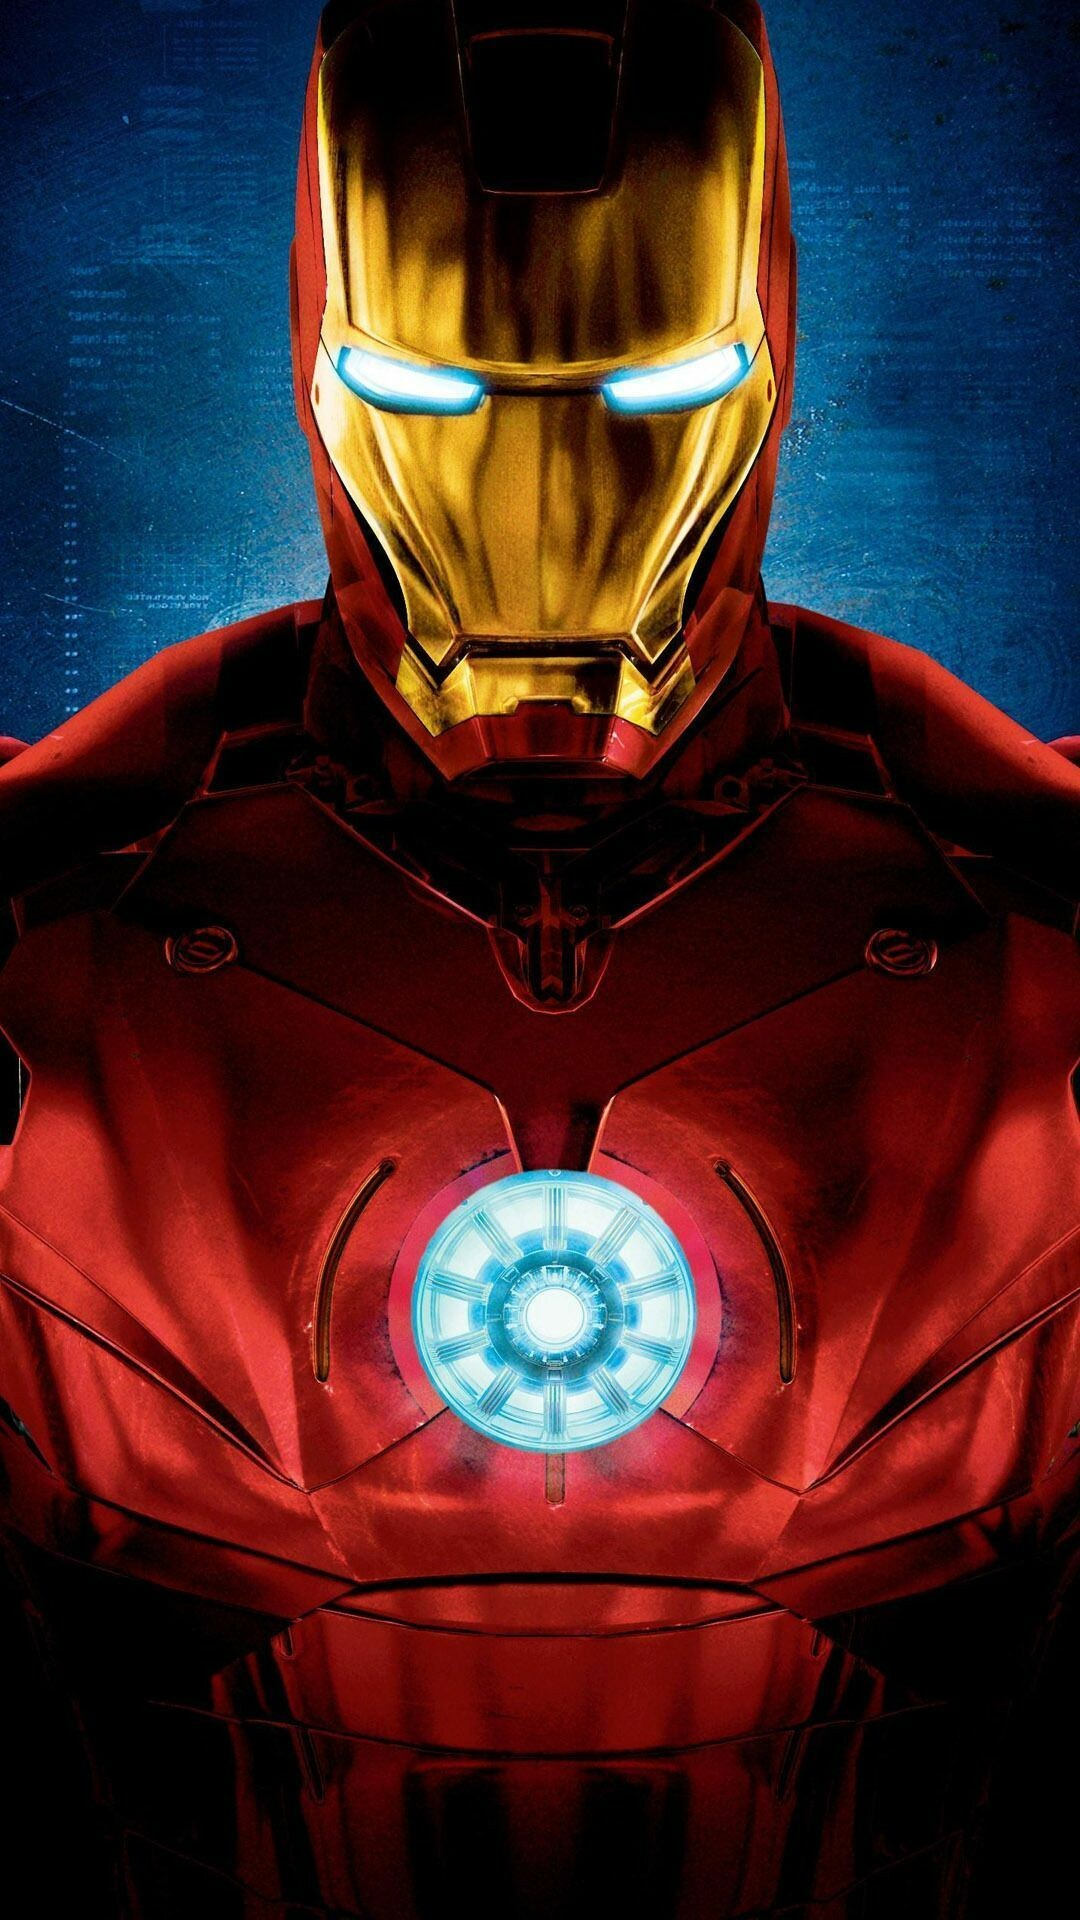 Iron Man Wallpapers: HD, 4K, 5K for PC ...